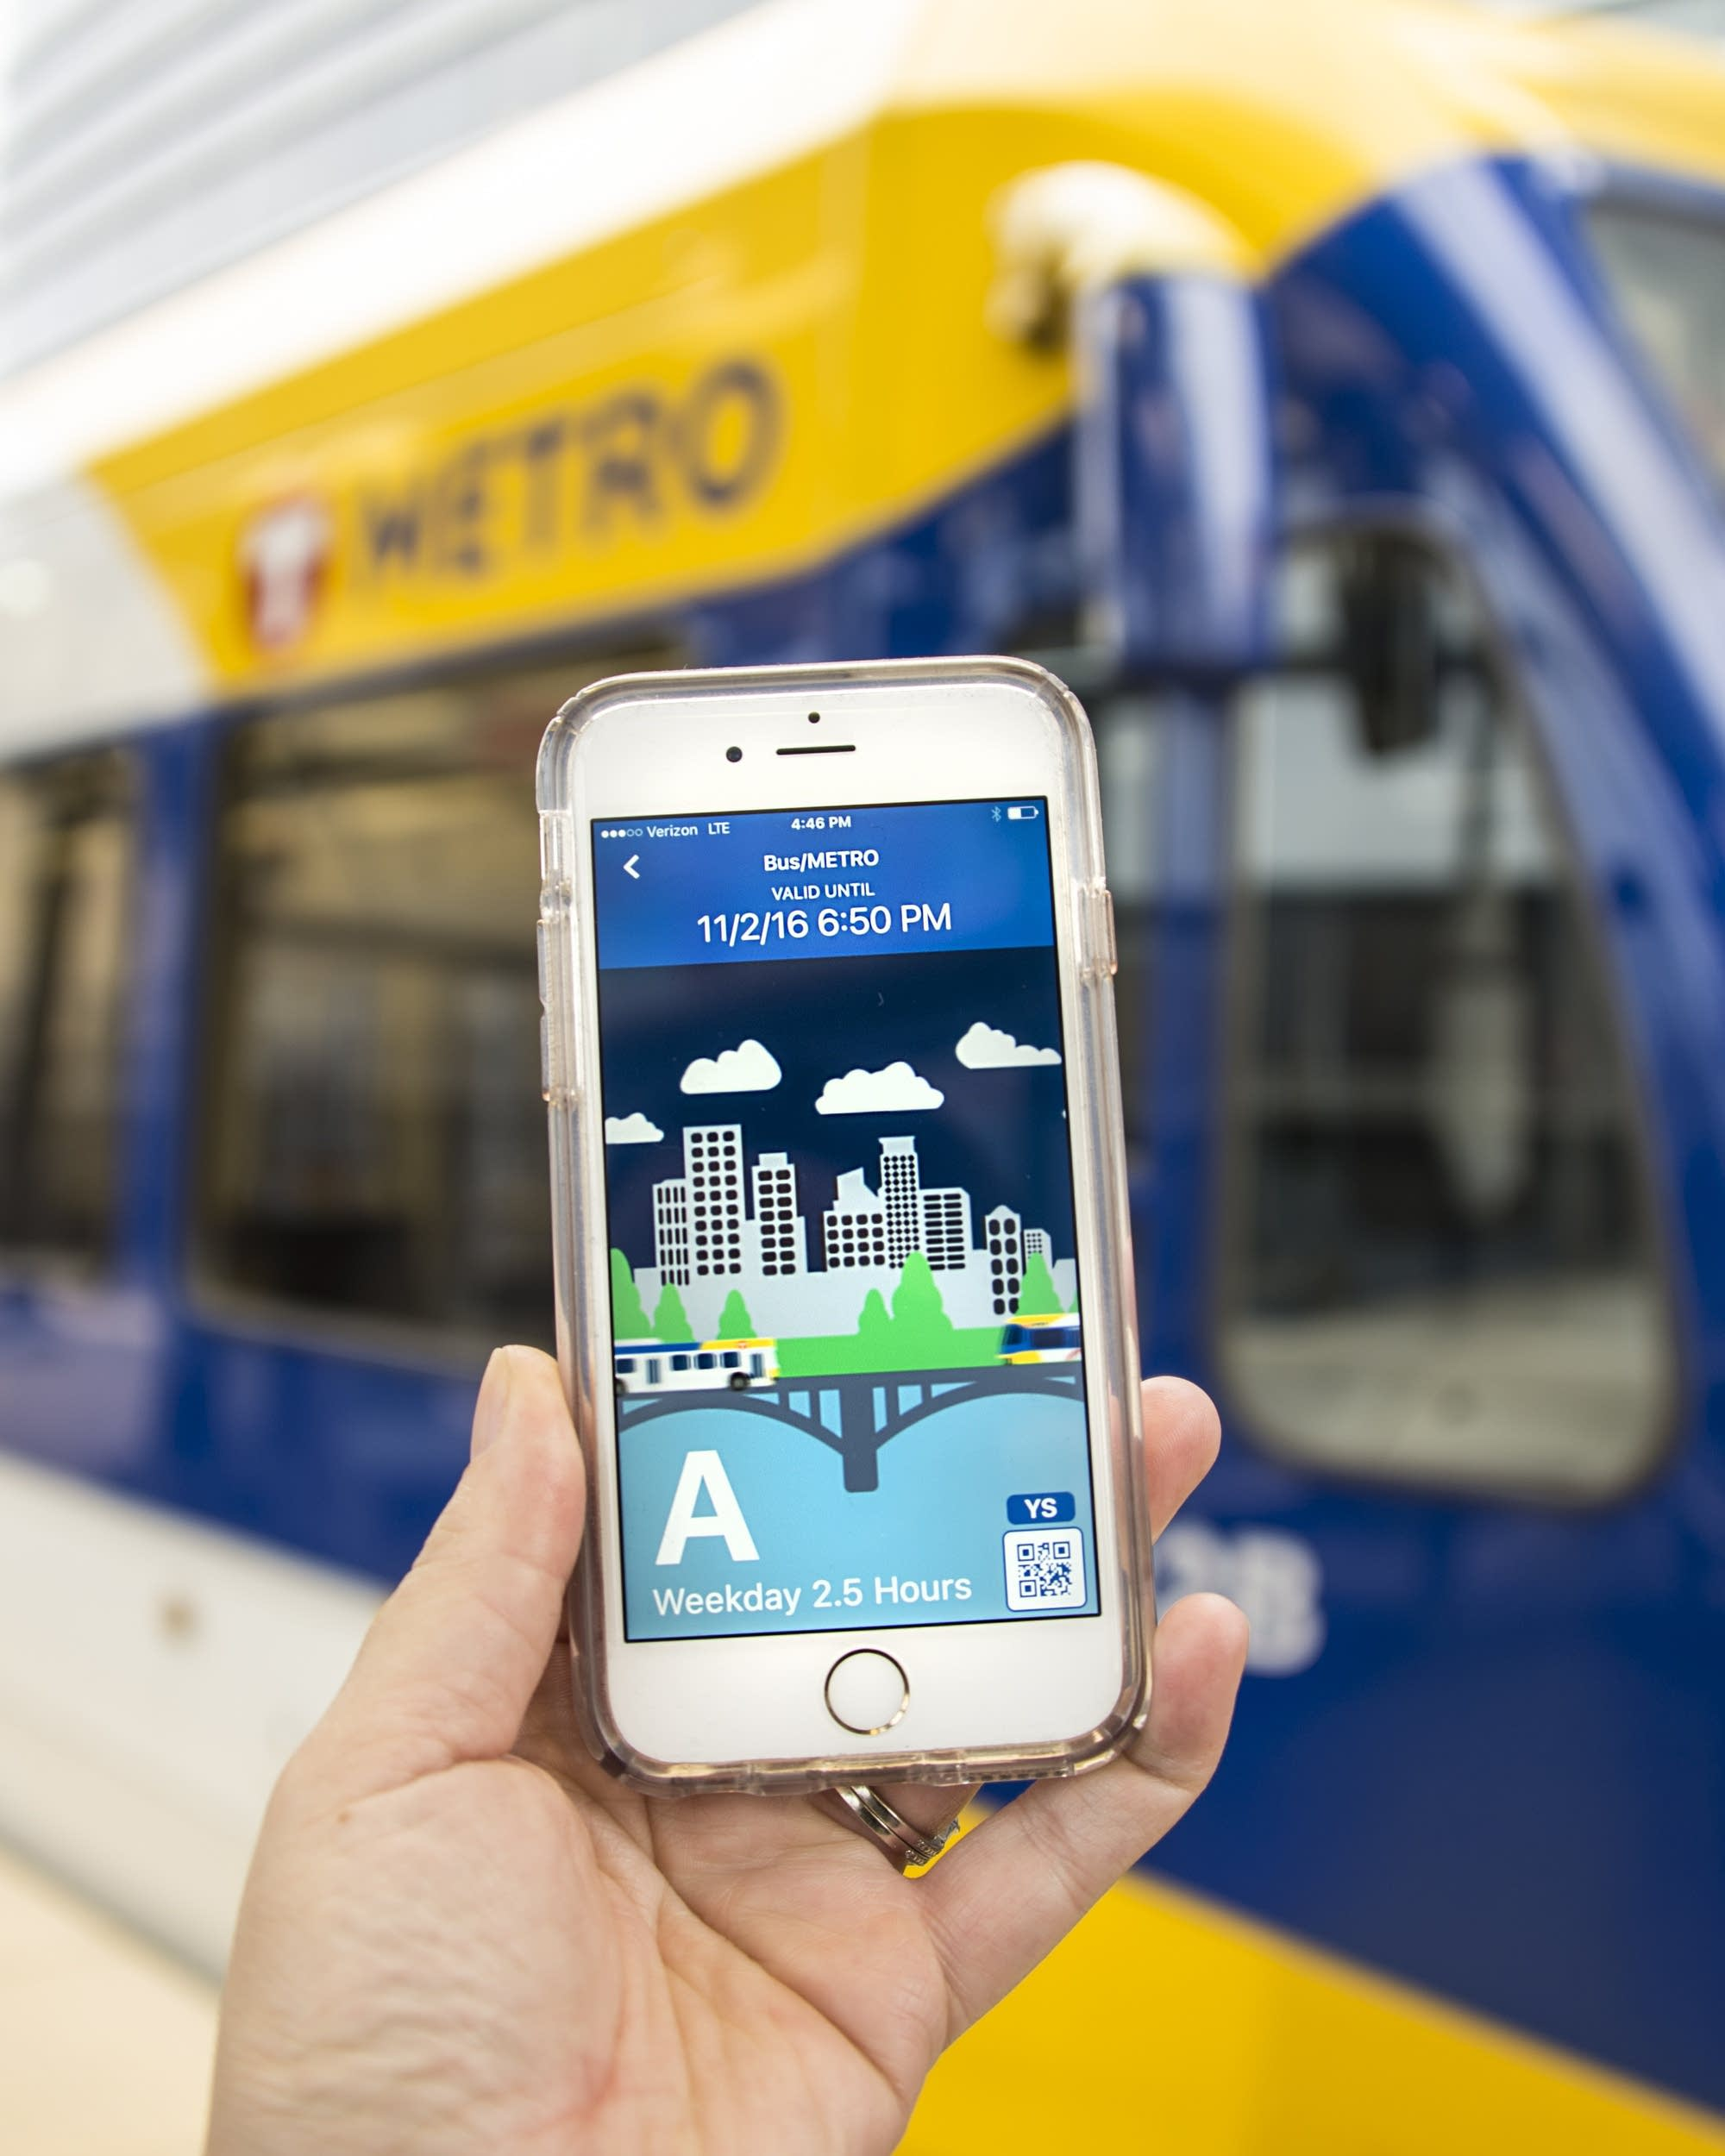 Paying your Metro Transit fare? There's an app for that